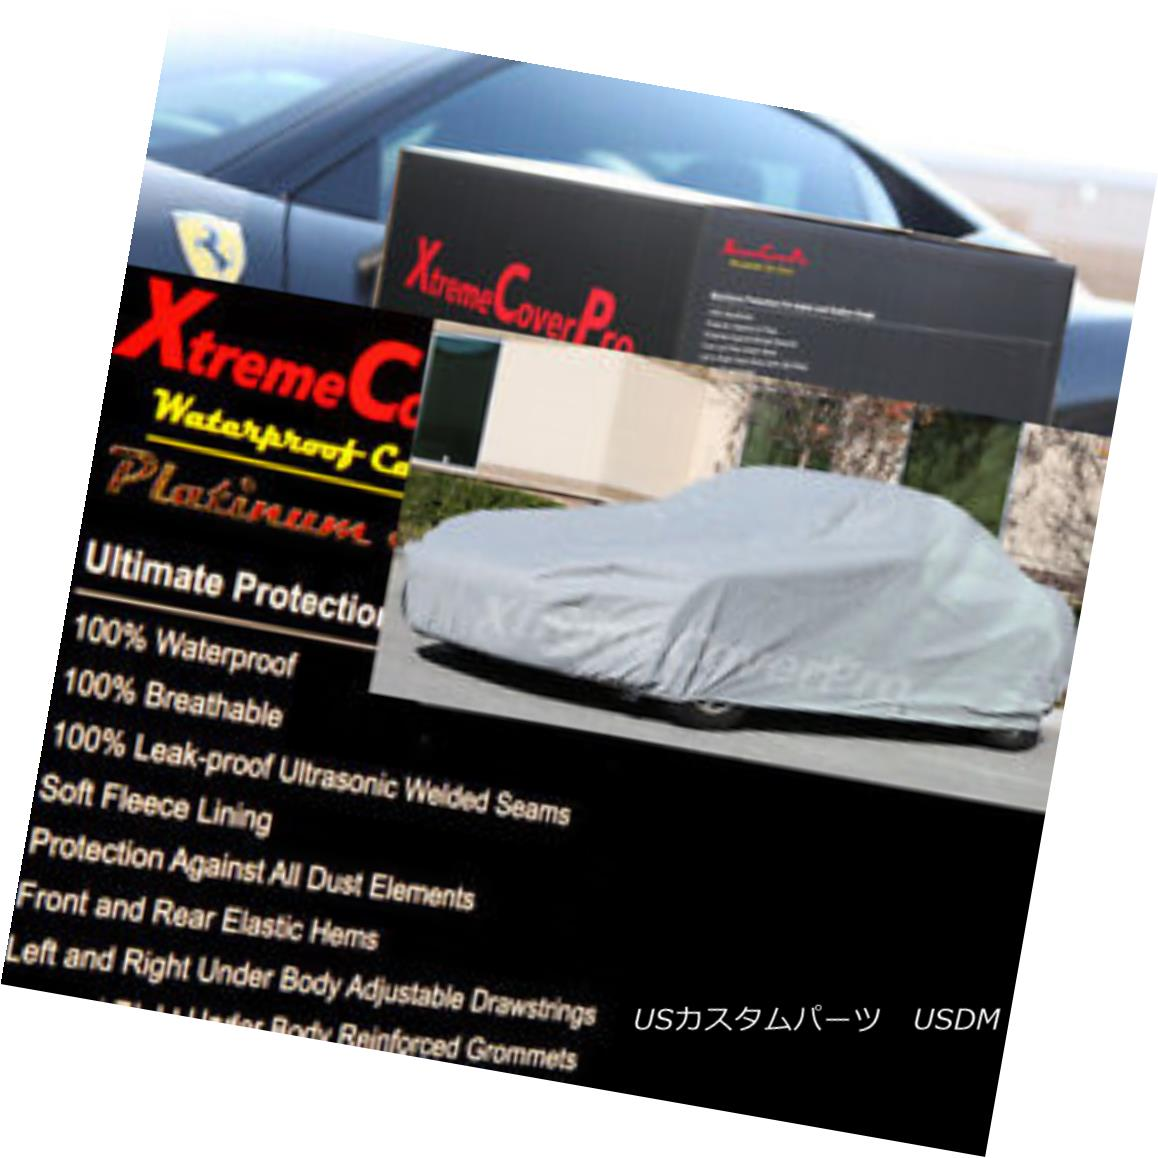 XtremeCoverPro Car Covers Ready fit for HONDA CIVIC COUPE